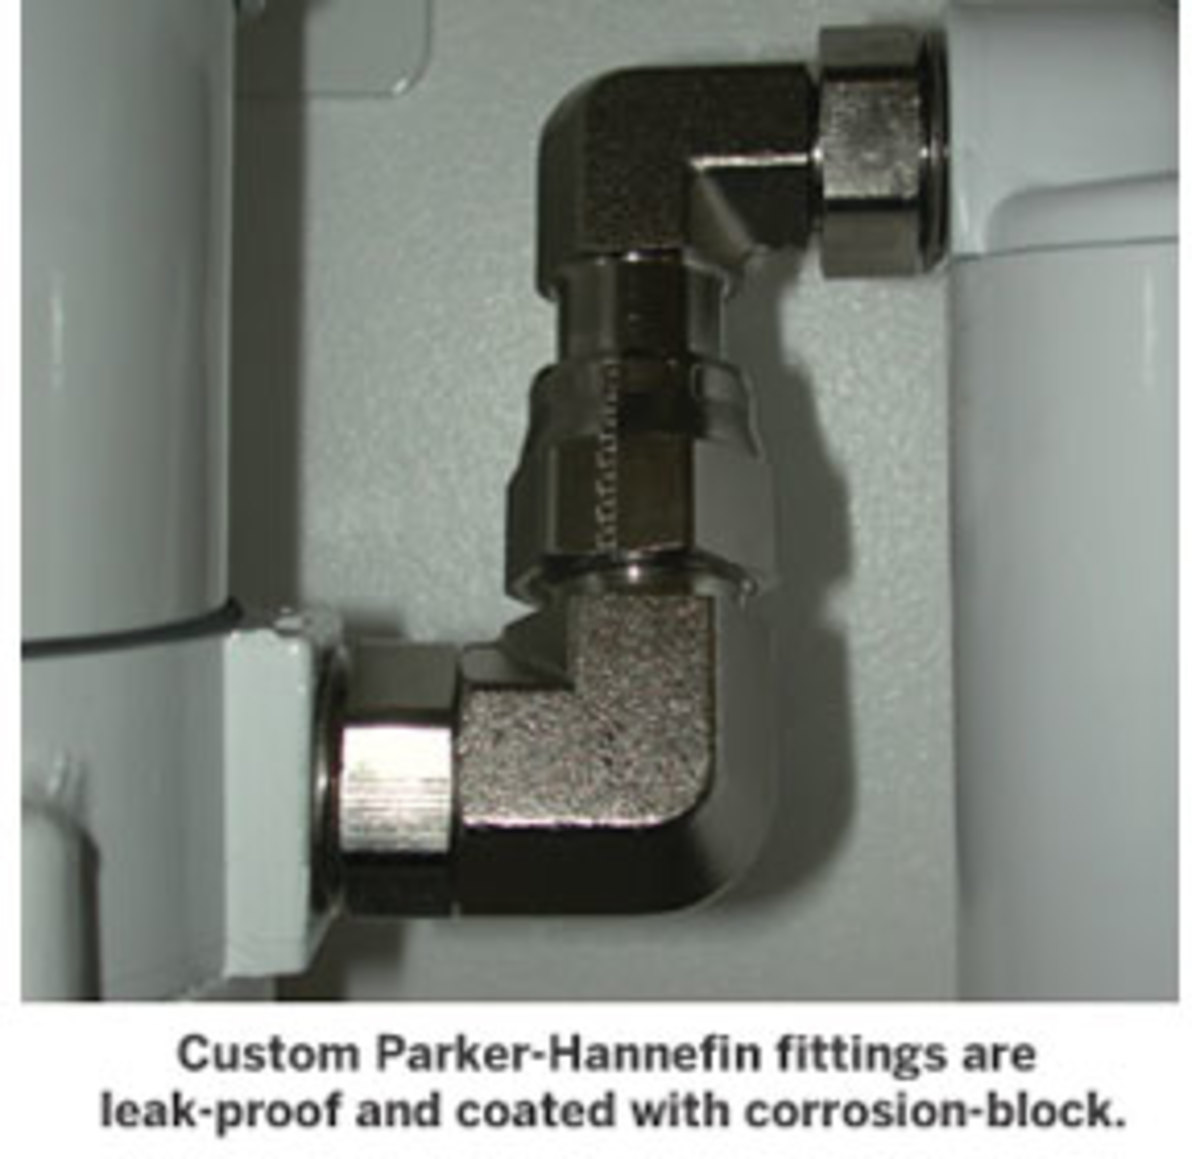 Custom Parker-Hannefin fittings